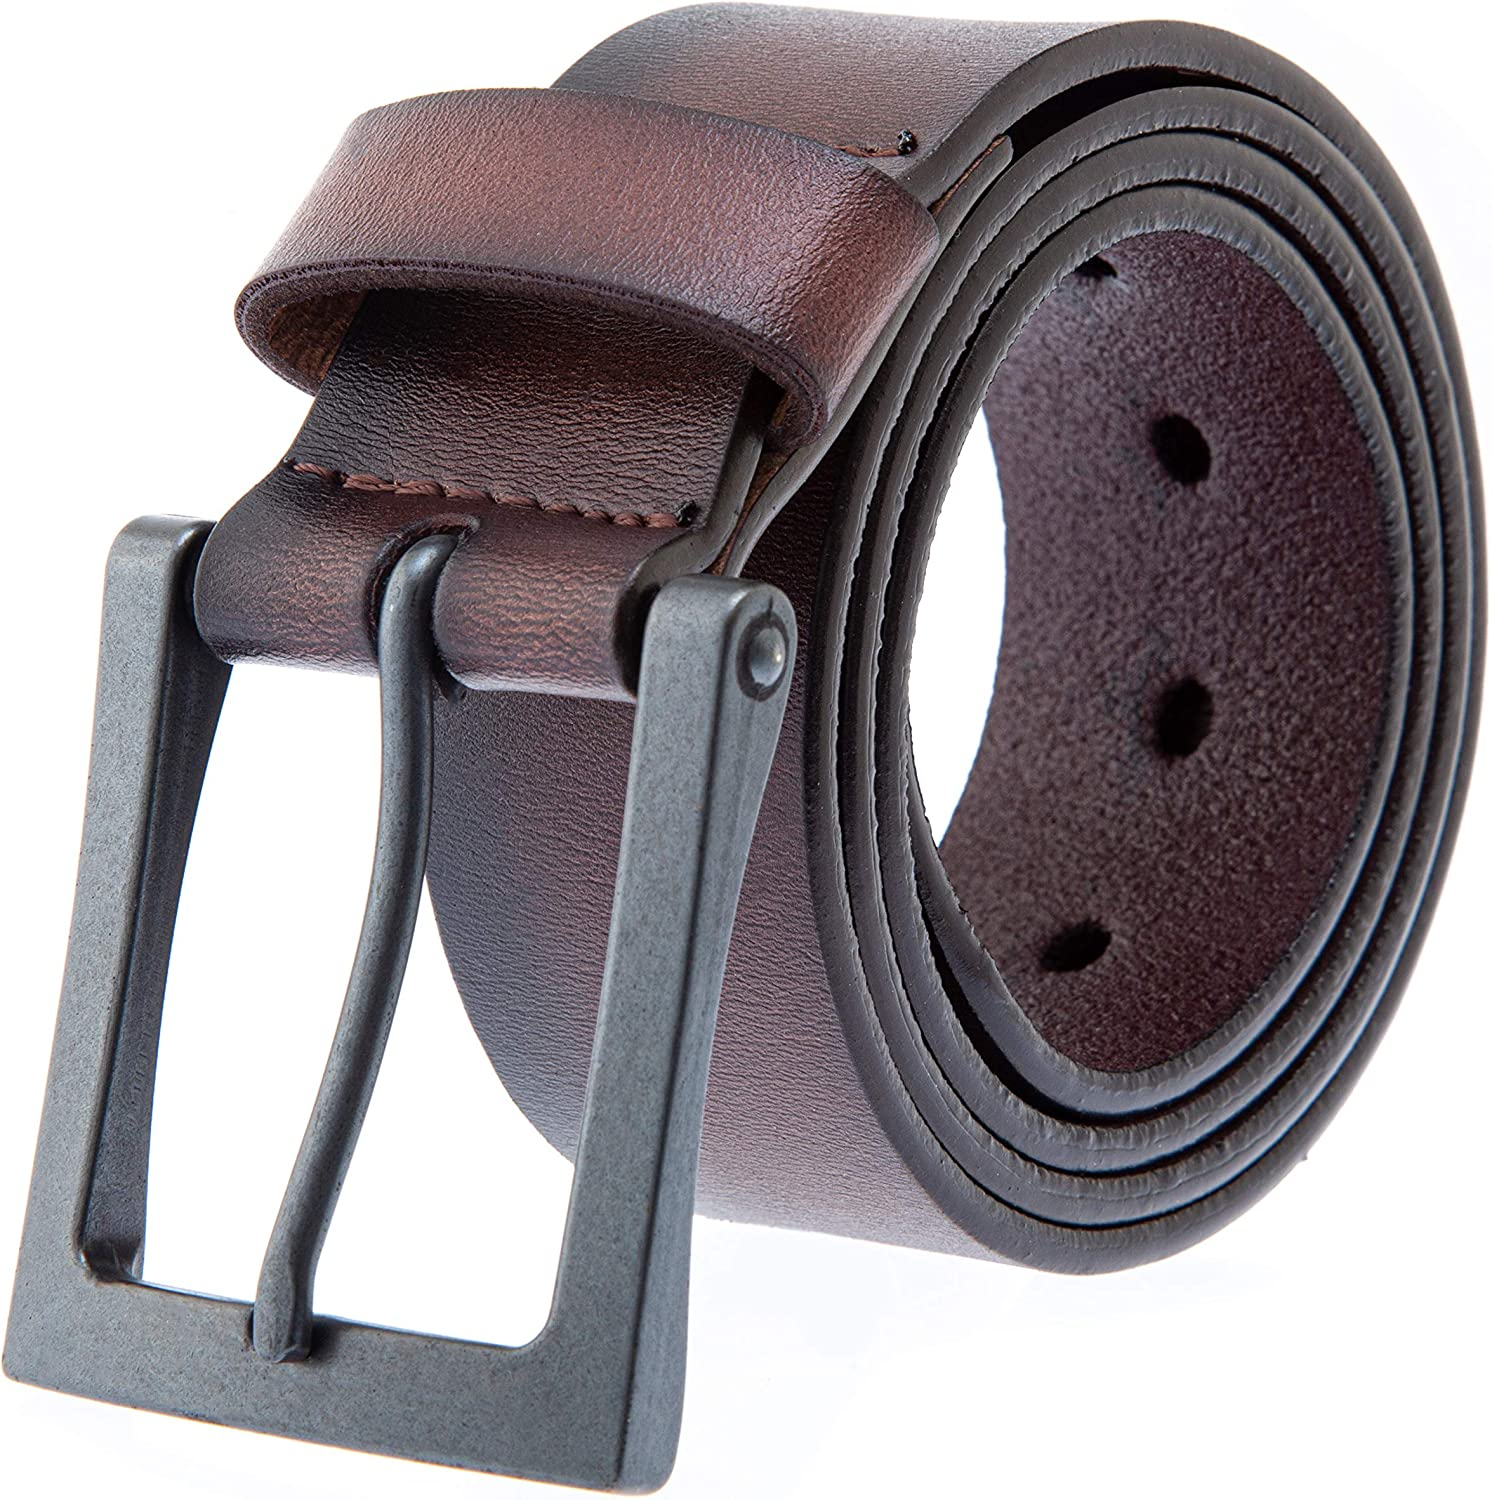 Cristopher Handmade Full Grain Strong Black Genuine Leather Belt Roller Buckle